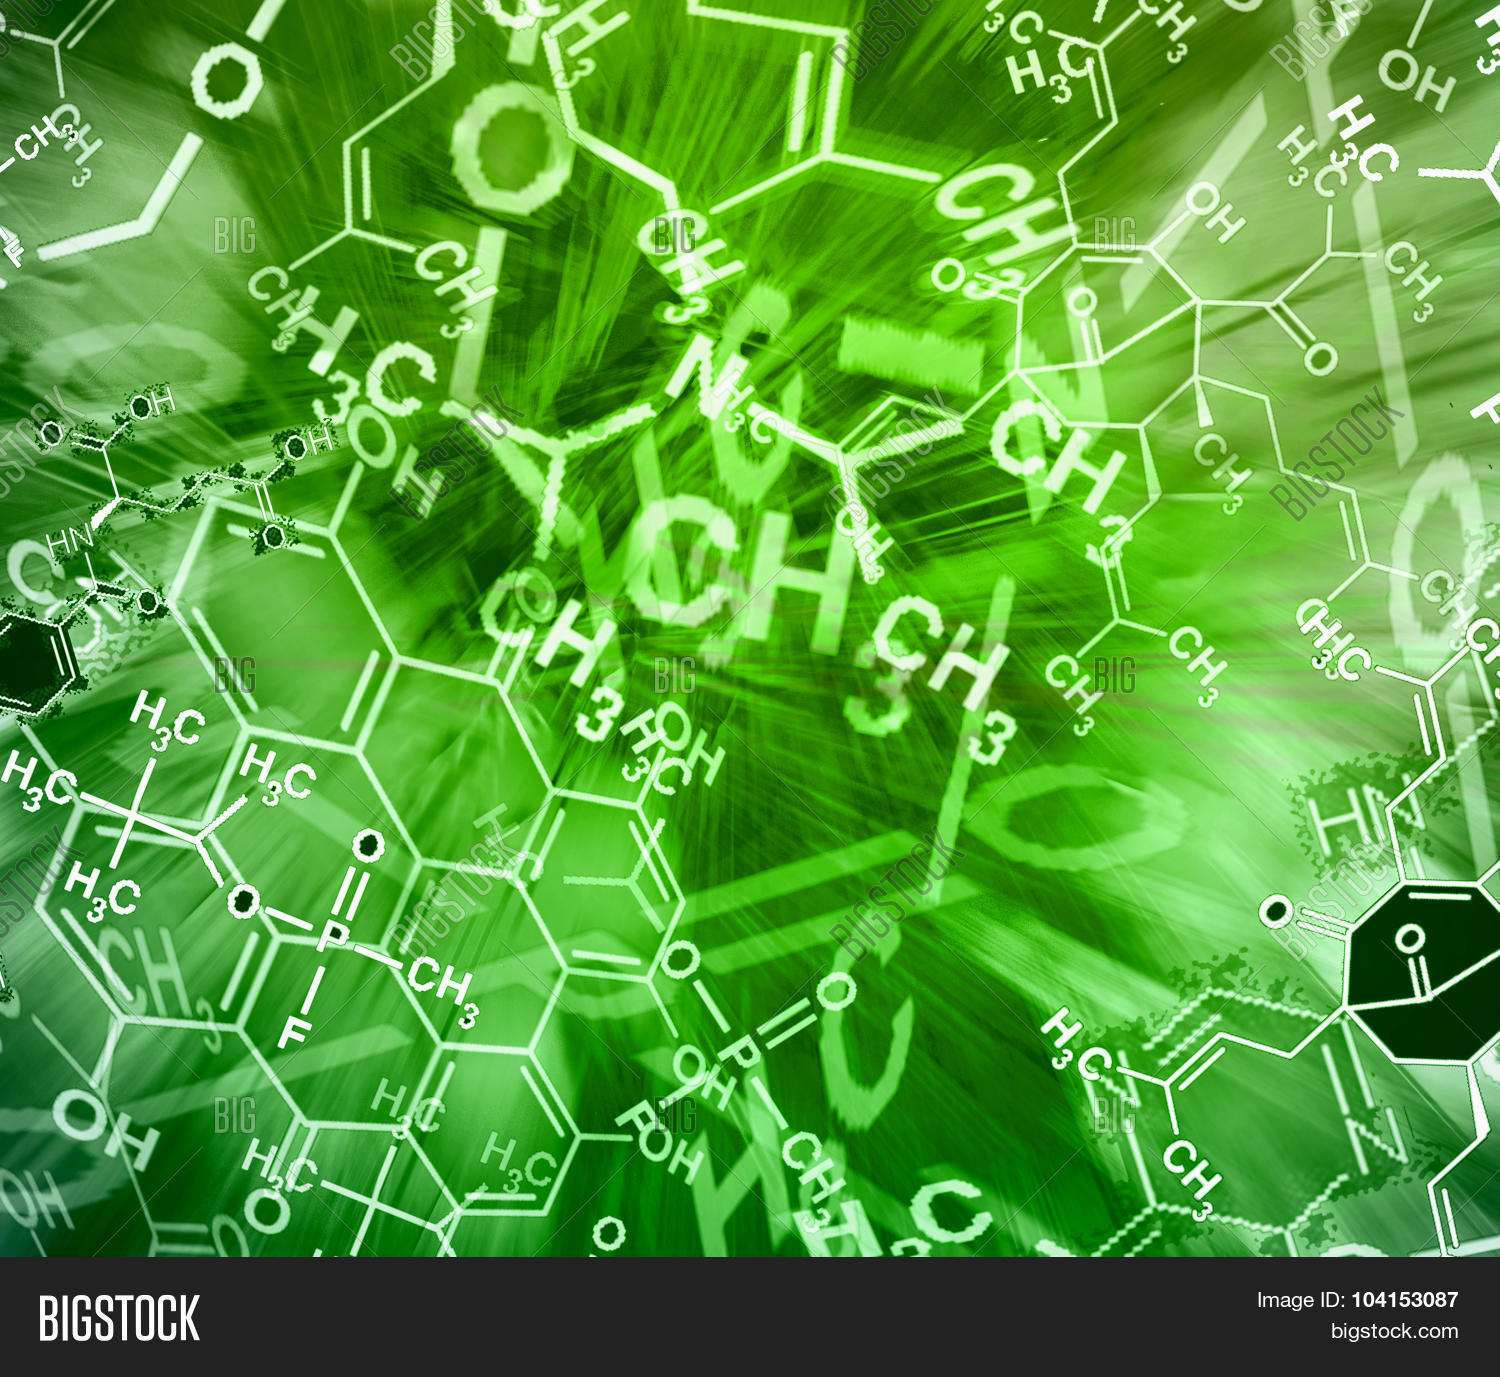 Download Science Wallpaper Background Gallery